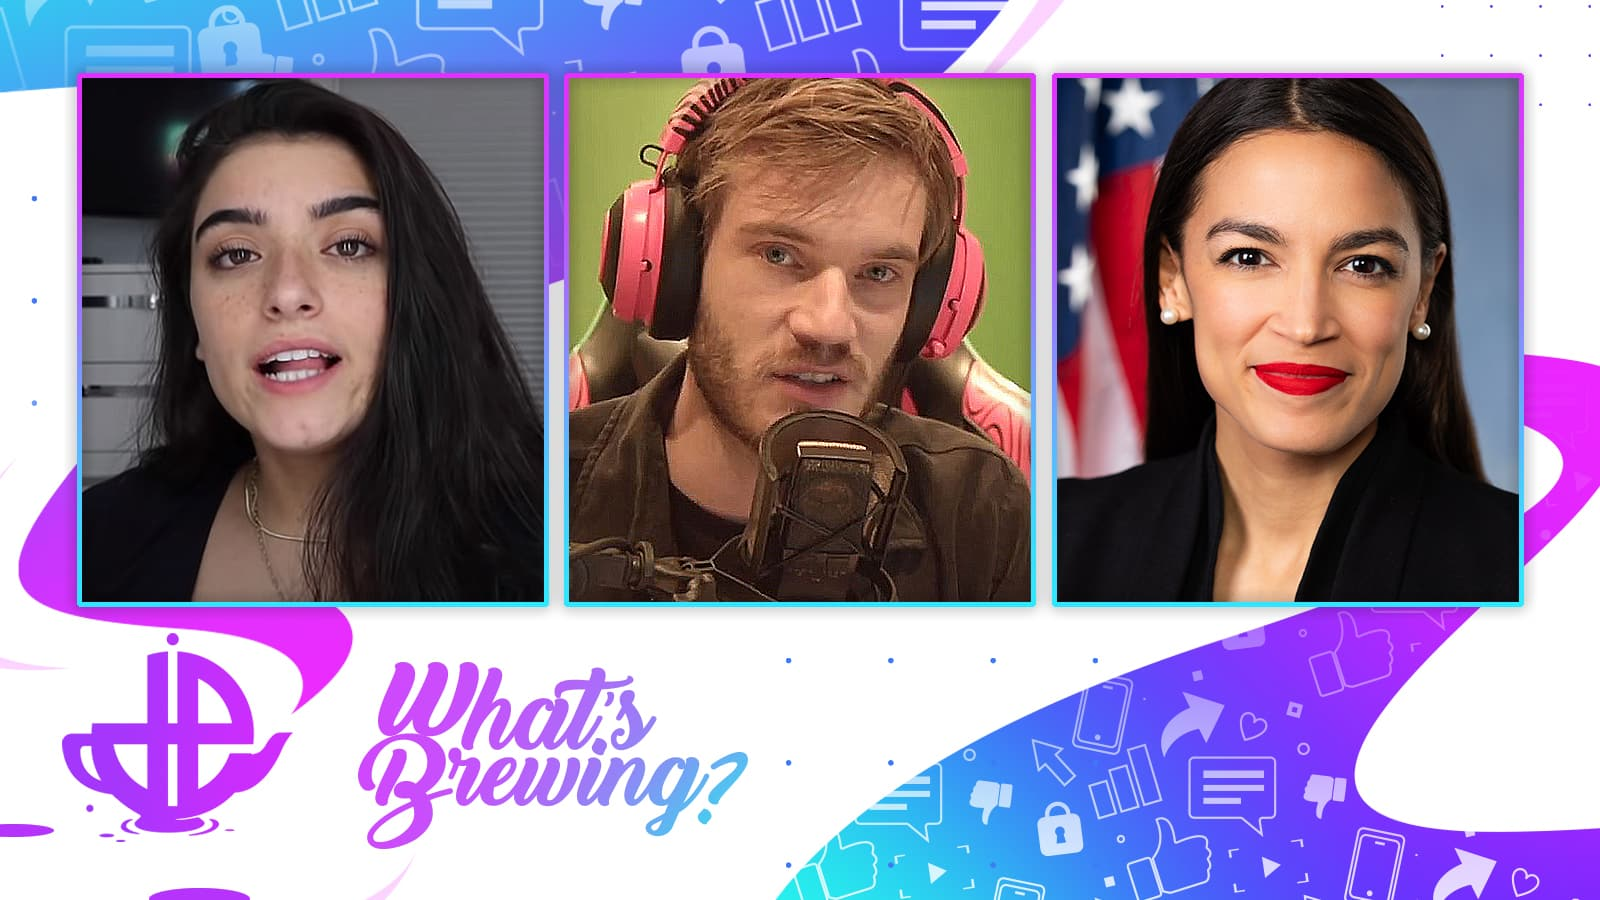 Photos of Dixie D'Amelio, PewDiePie and AOC are shown against the What's Brewing background.